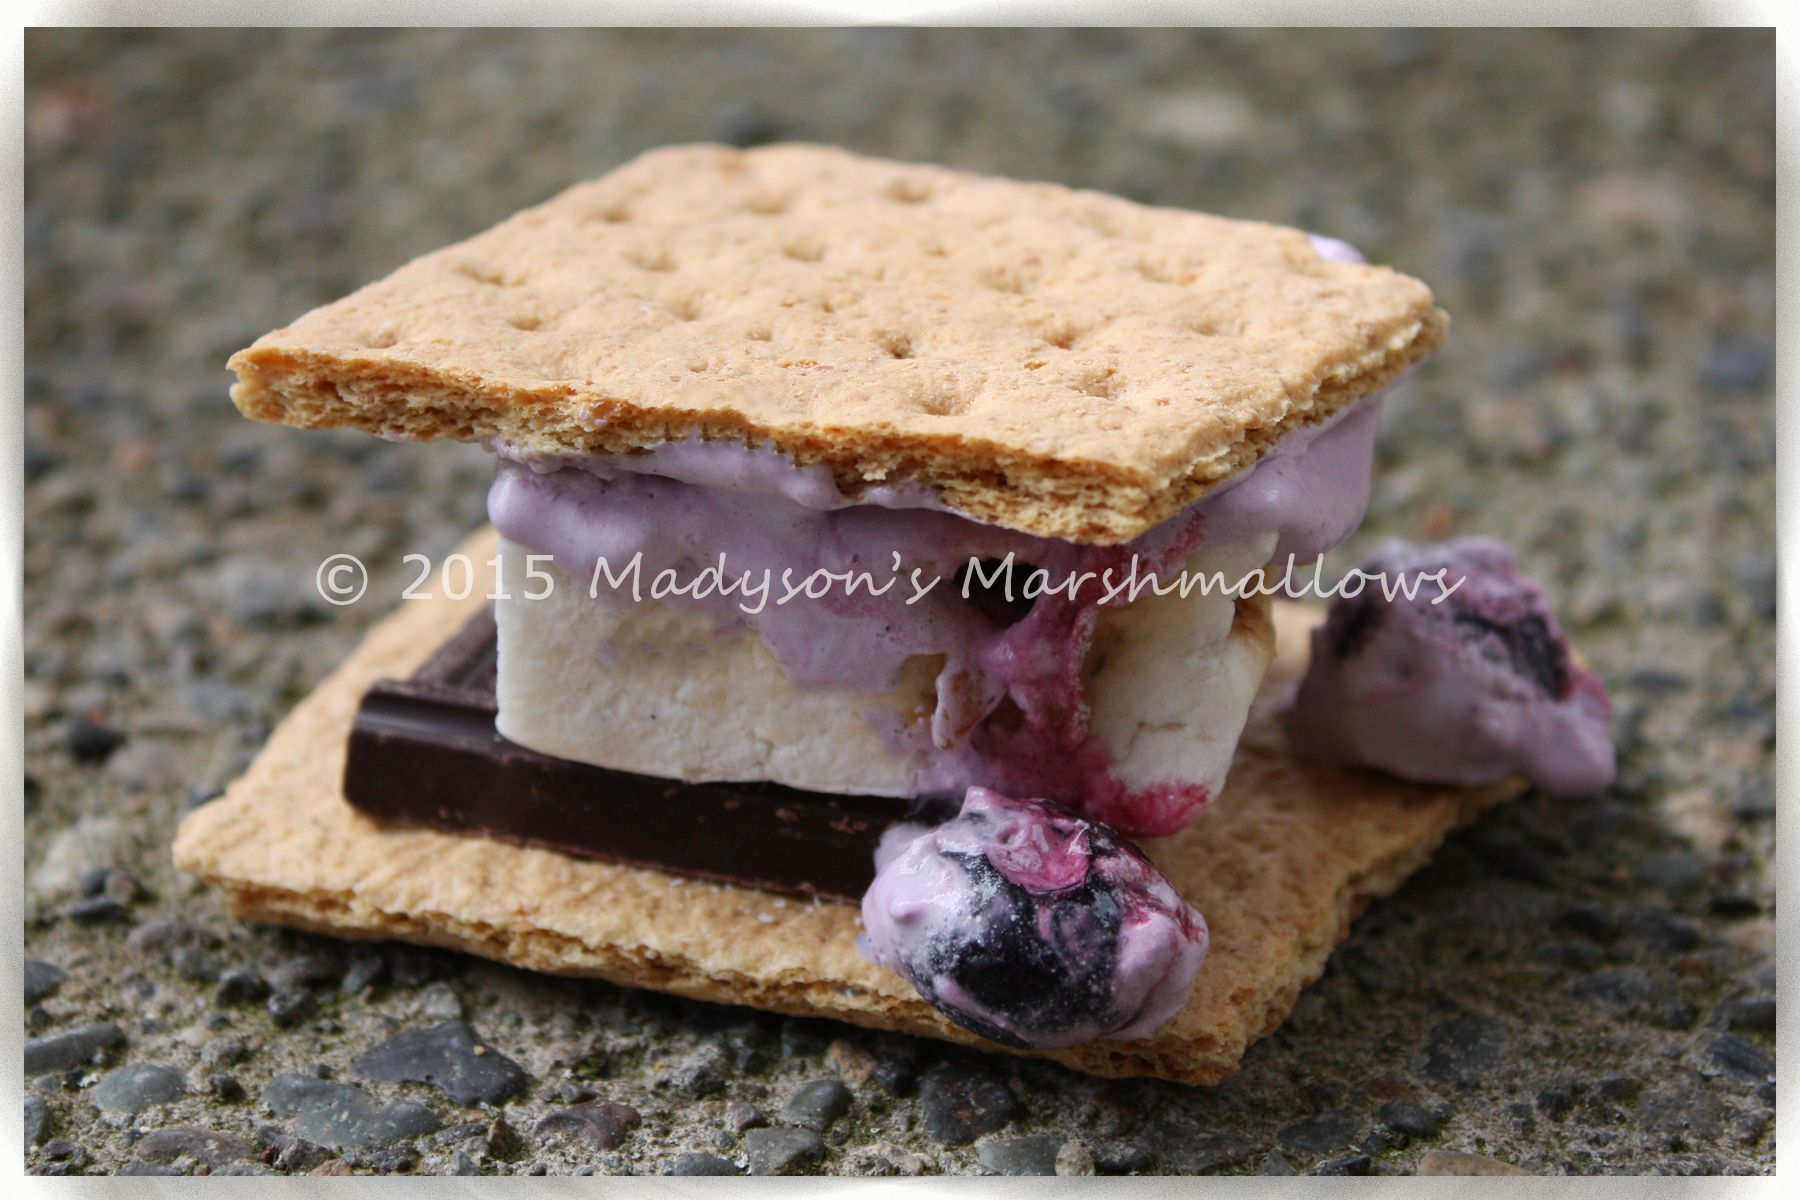 Cool Whip® & Blueberry S'more - creative s'mores by Madyson's Marshmallows